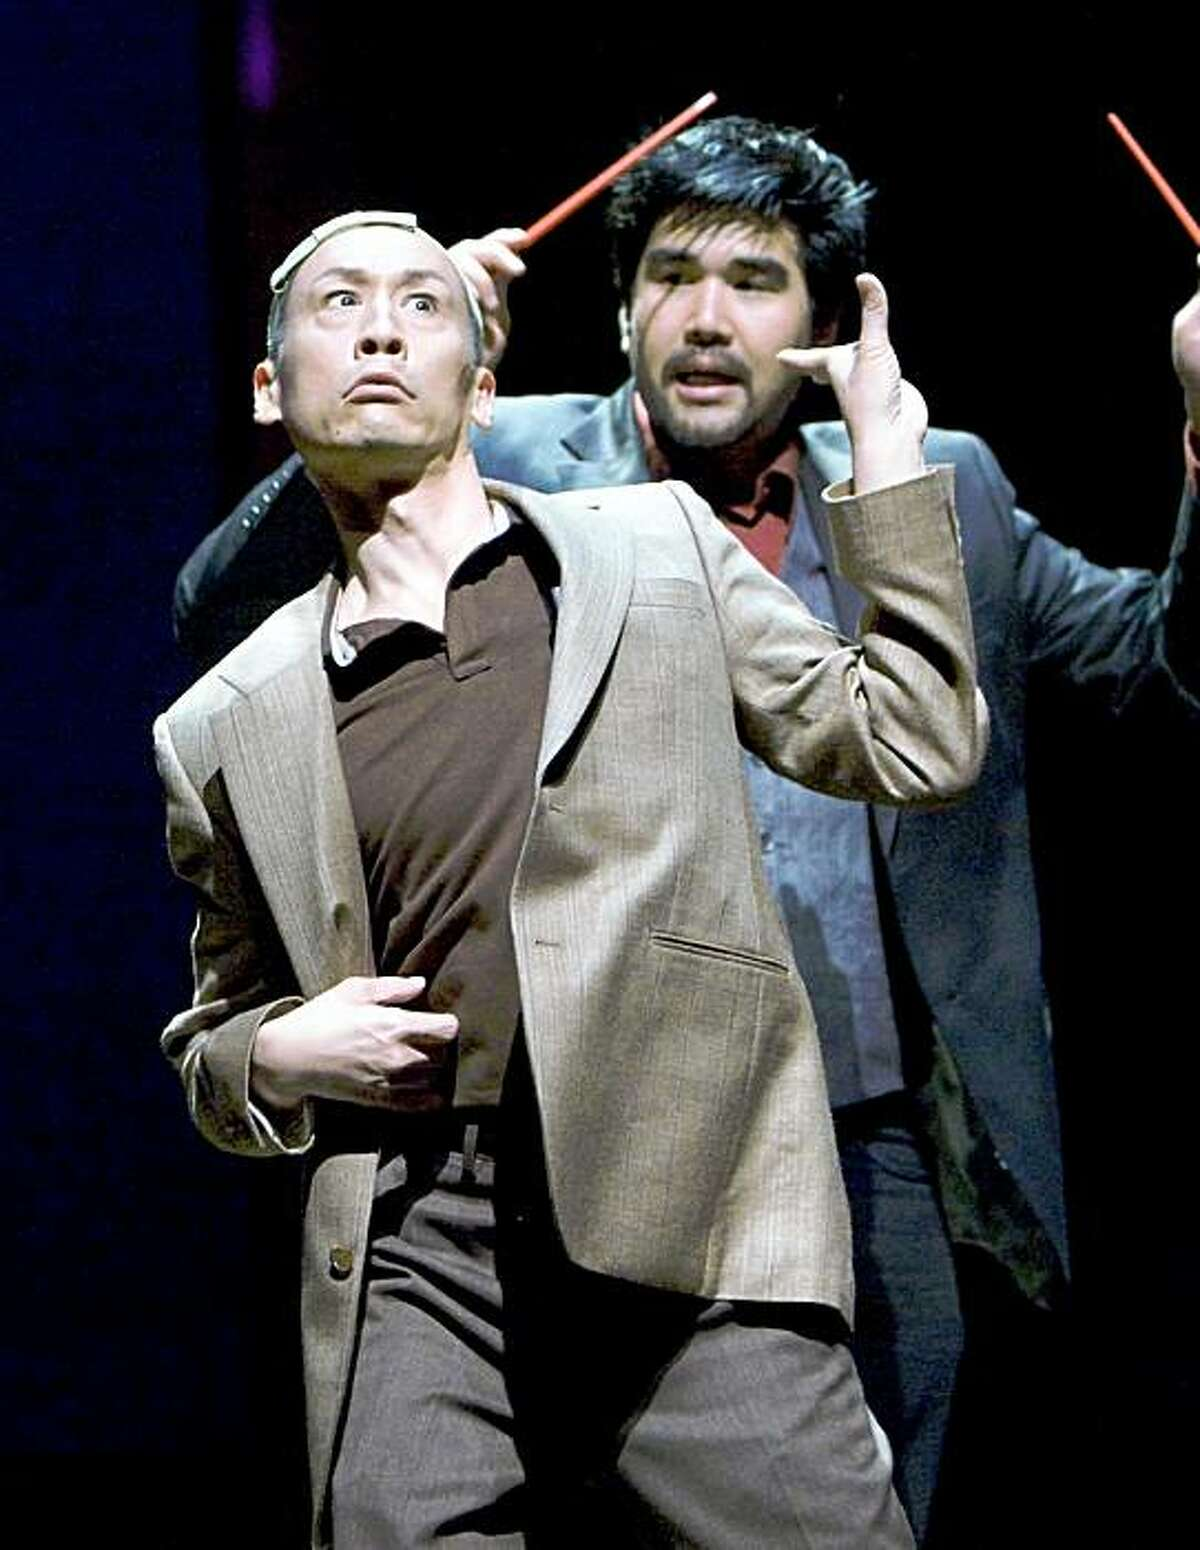 Pun Bandhu (right) as playwright D.H.H. with Francis Jue as his father H.Y.H. in David Henry Hwang's